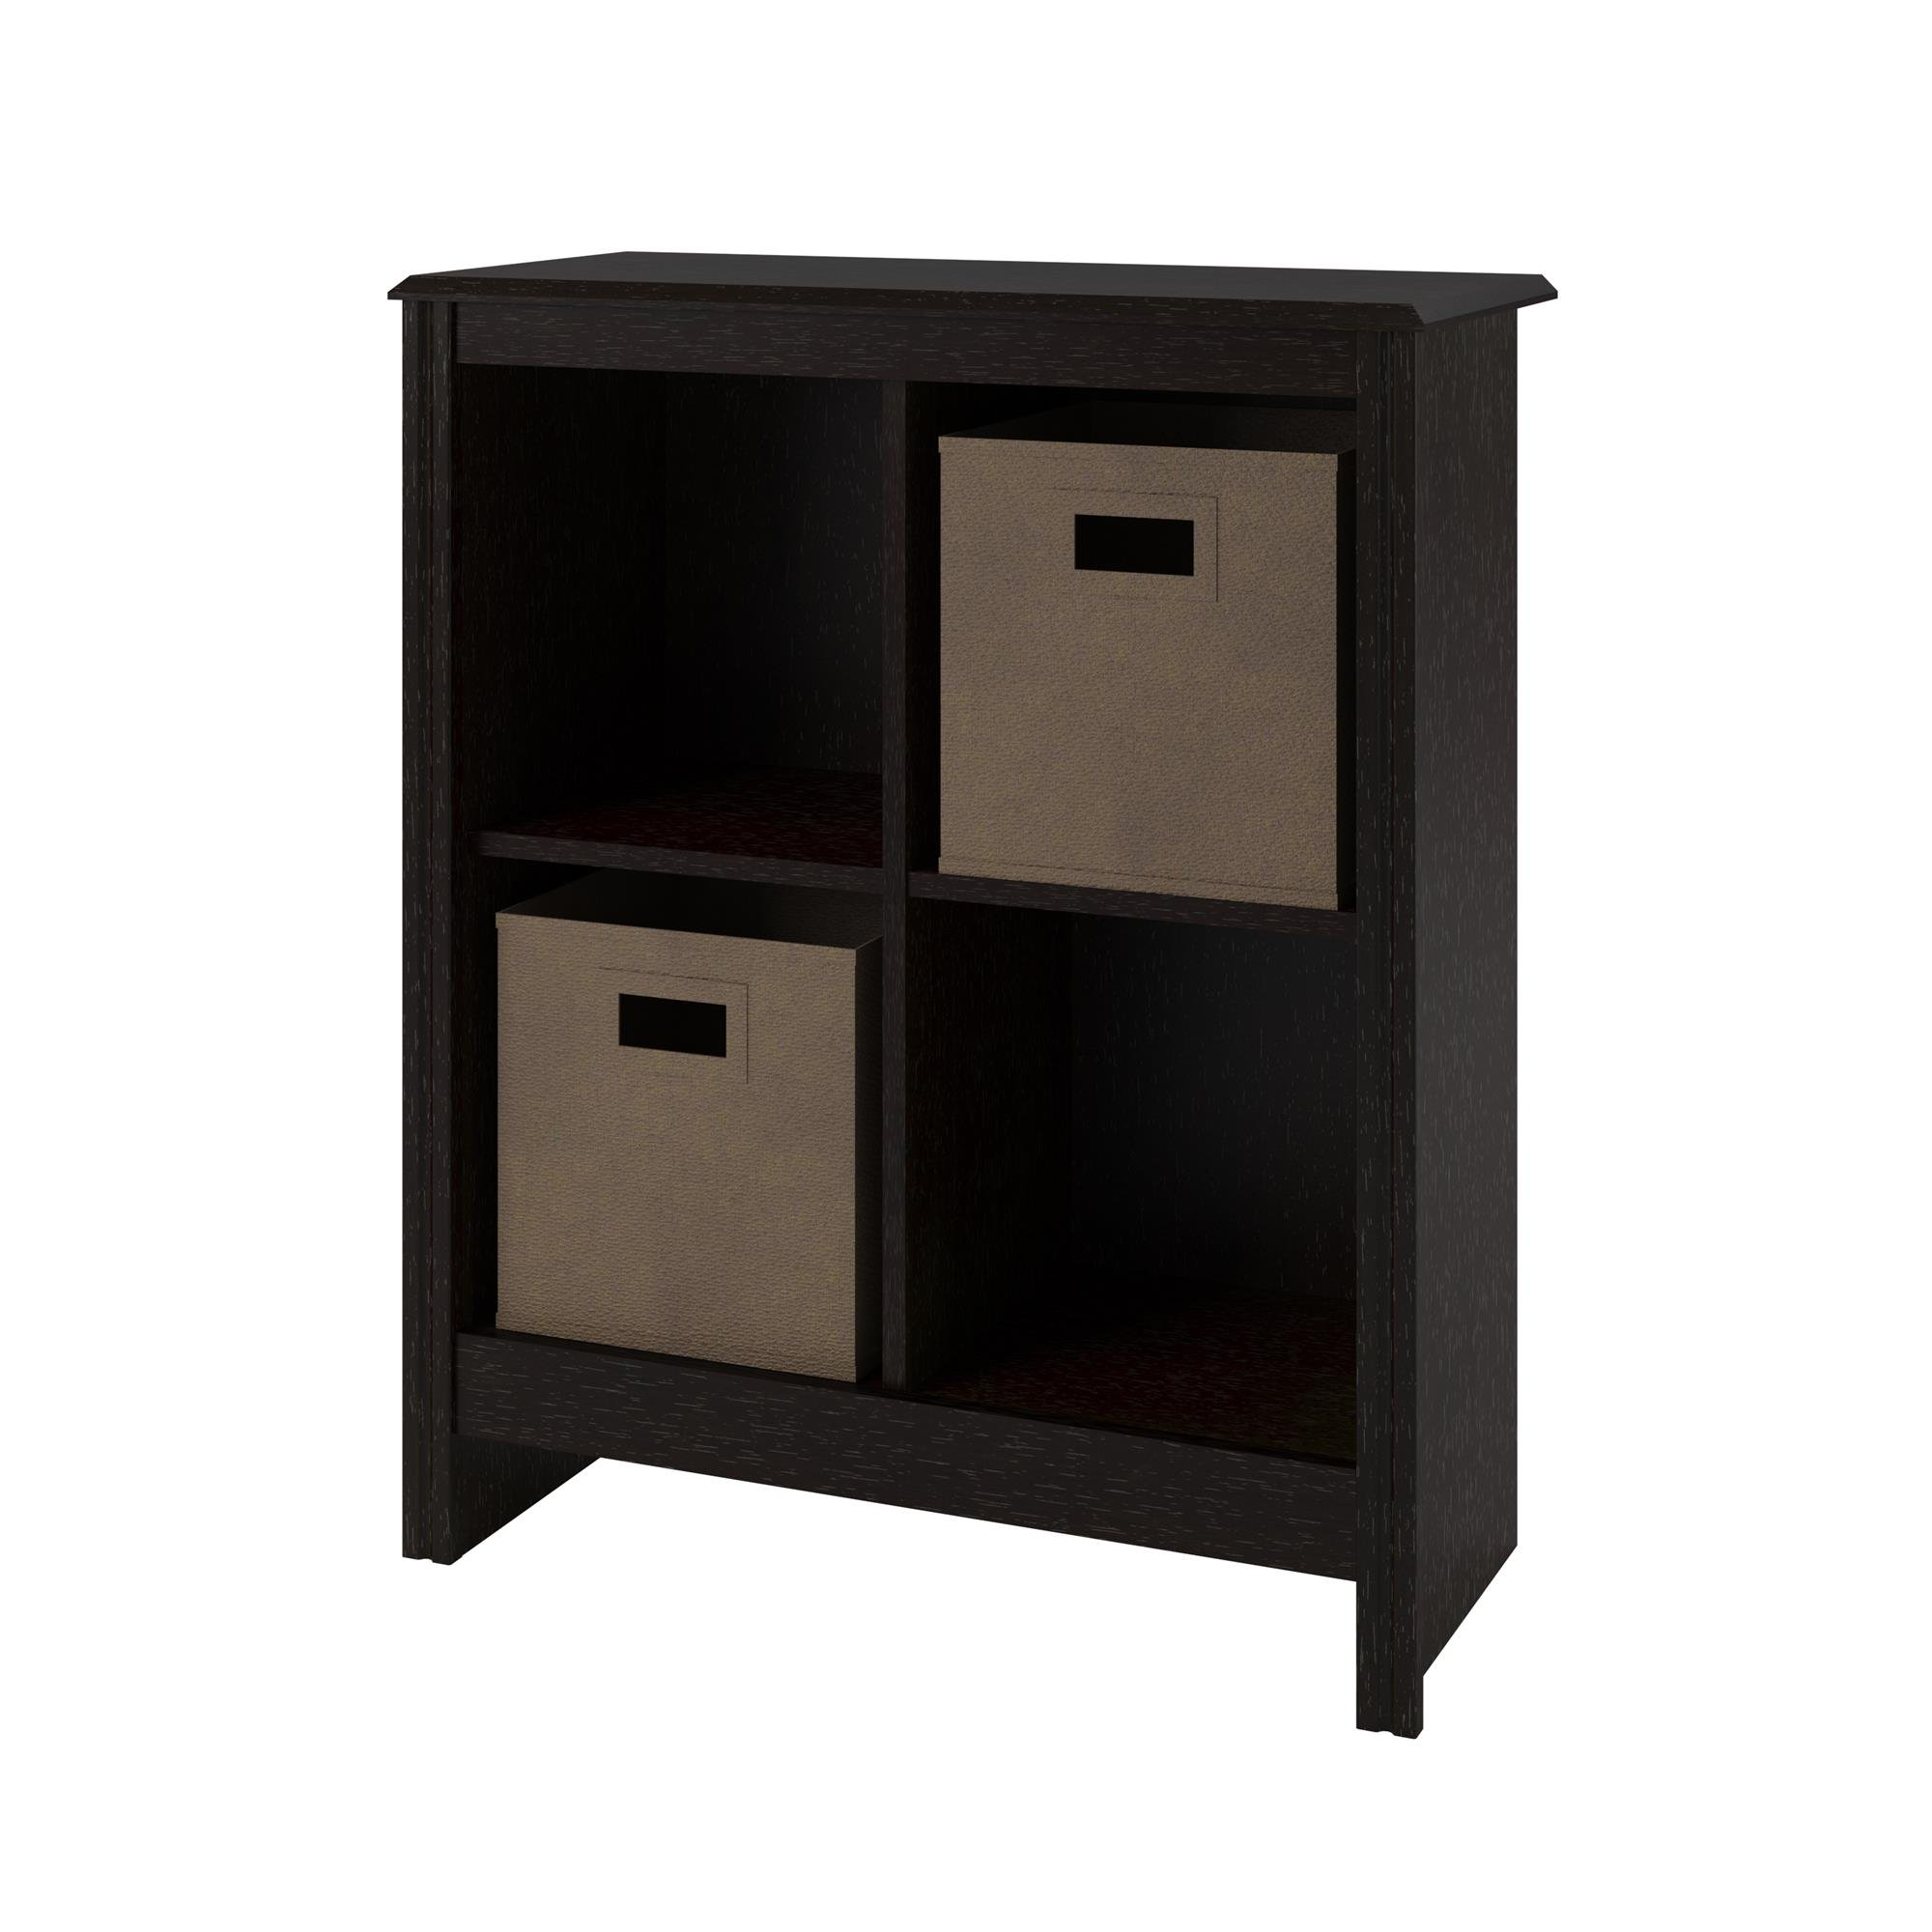 Ameriwood 4-Cube Cubby Bookcase with 2-Storage Bins, Black Roast